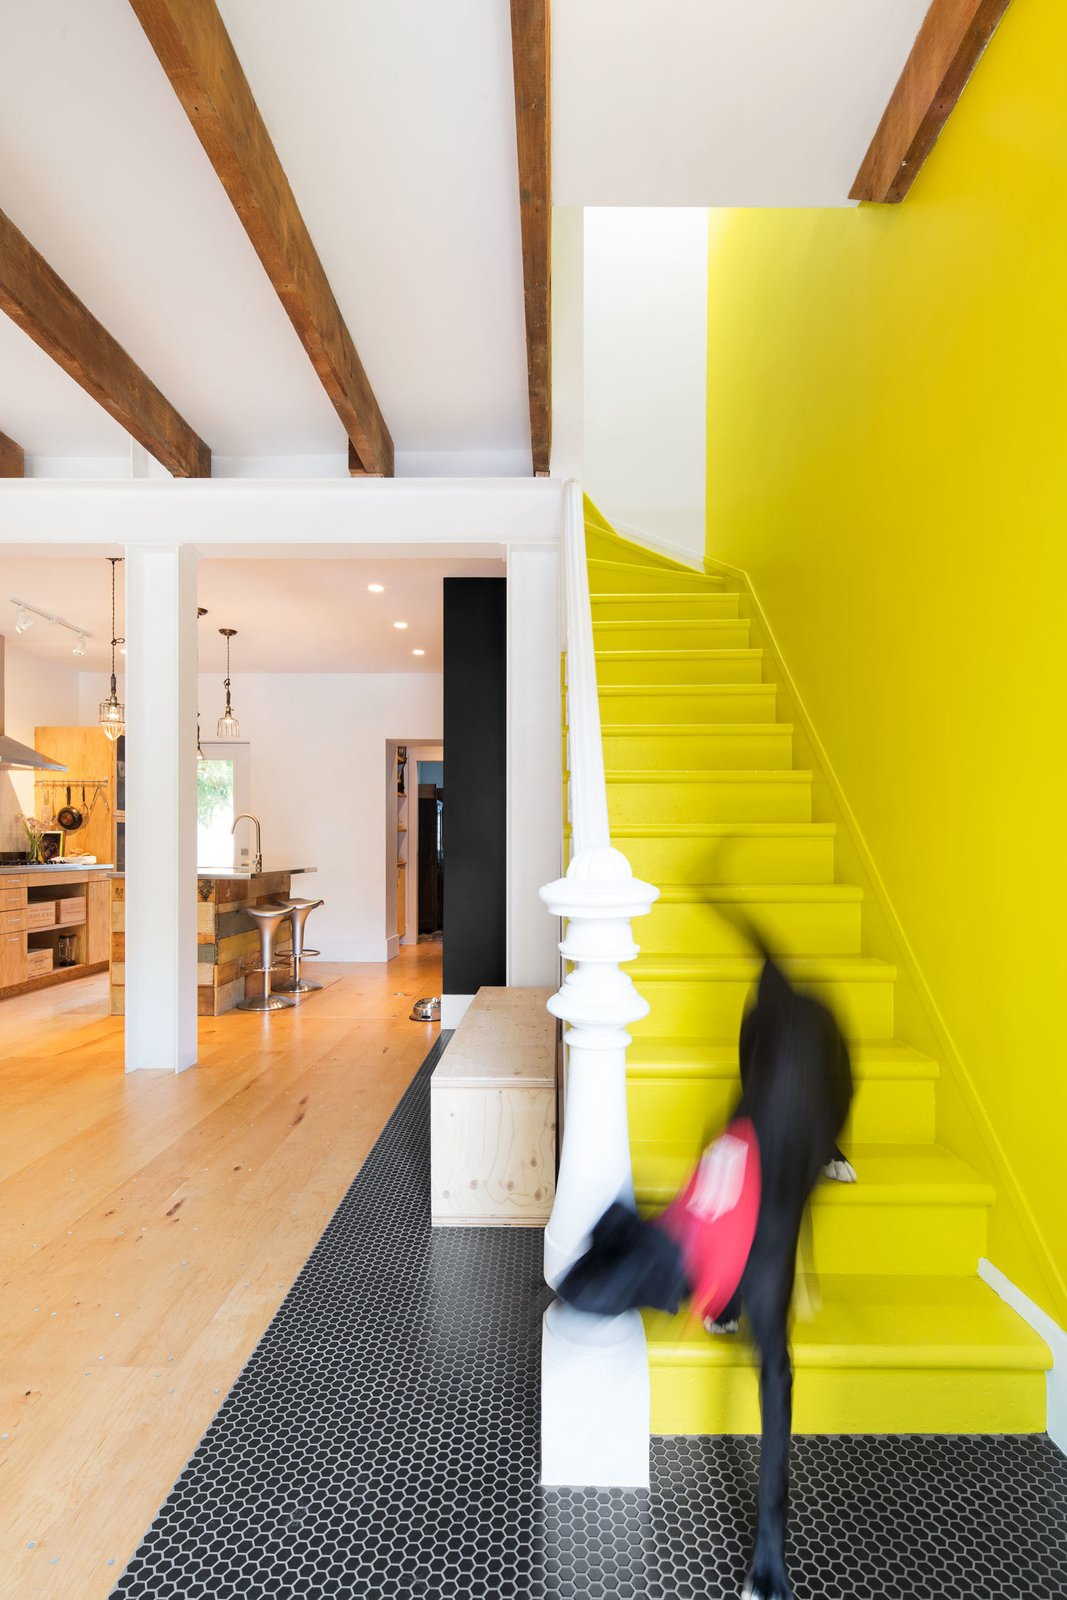 #color #interior #yellow #minimal #stairs #staircase #renovation #Montreal #Canada #MarkFekete #VivianadeLoera  36+ Interior Color Pop Ideas For Modern Homes by Dwell